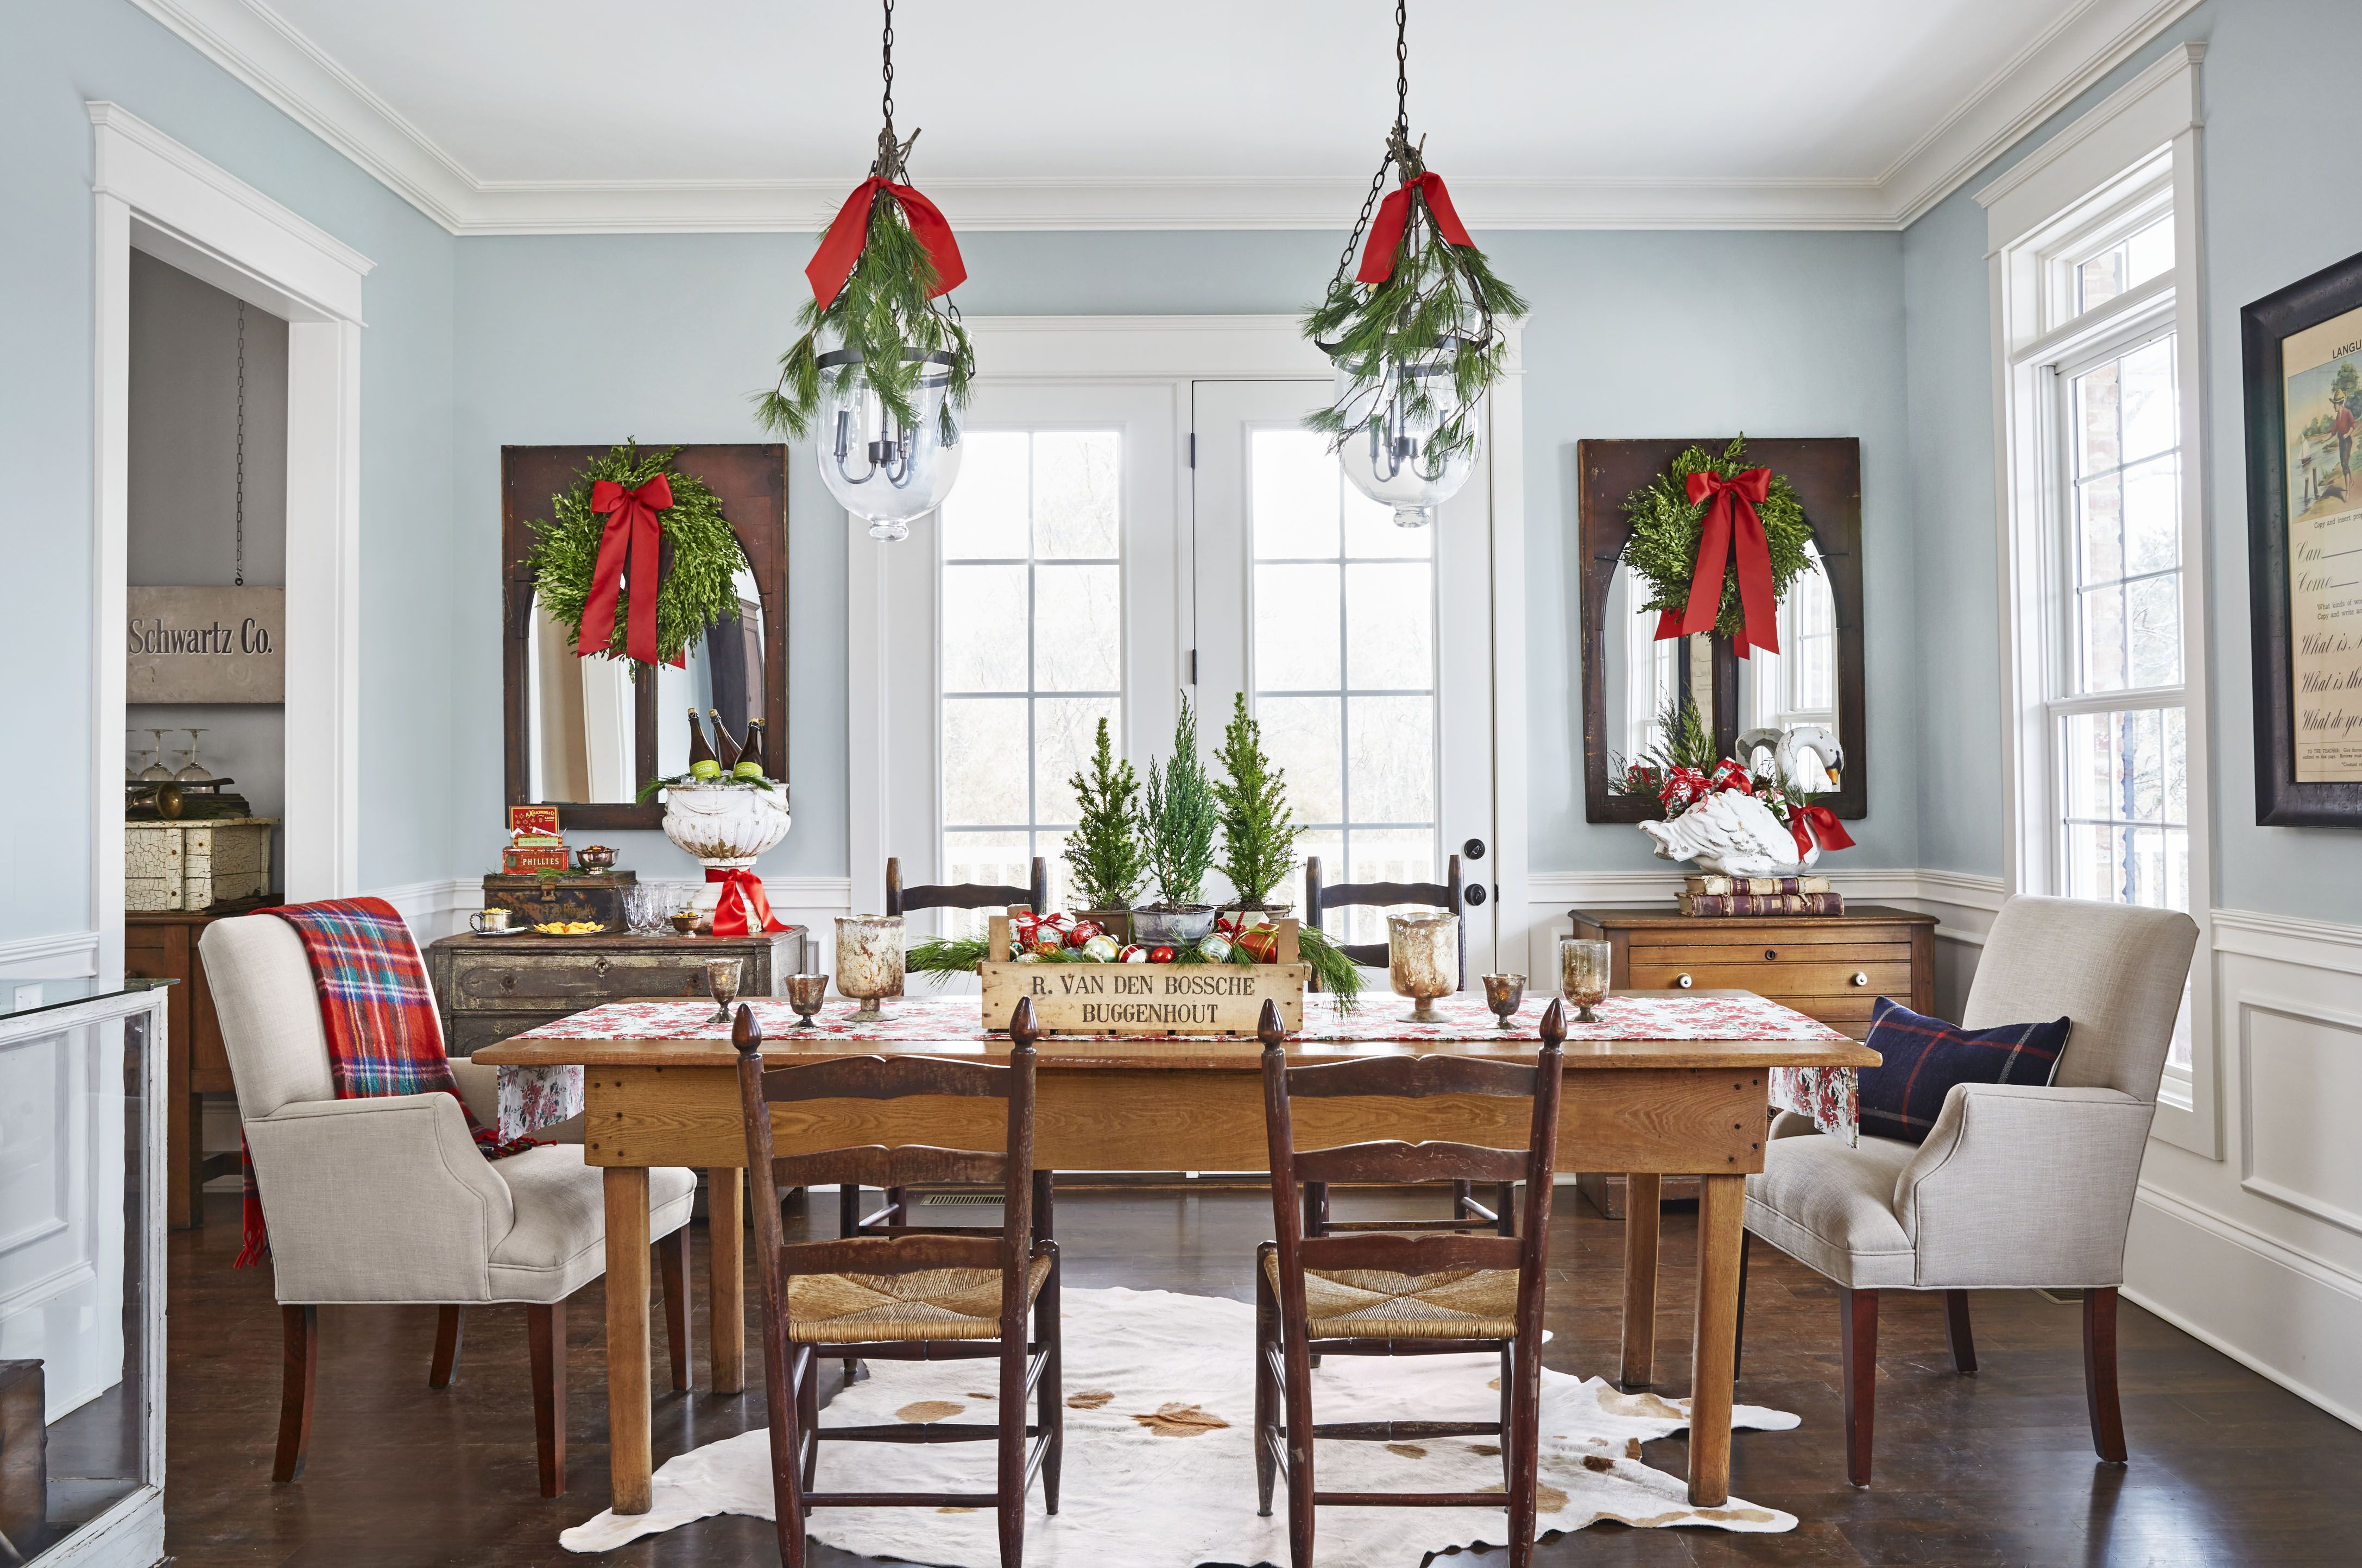 110 Country Christmas Decorations - Holiday Decorating Ideas 2018 on living room ideas, kitchen dining cabinets, kitchen library ideas, kitchen rugs ideas, kitchen under stairs ideas, kitchen dining fireplace, kitchen dining home, kitchen breakfast room ideas, kitchen storage room ideas, kitchen dining garden, kitchen dining interior design, kitchen tv room ideas, kitchen back porch ideas, kitchen dining contemporary, kitchen mud room ideas, kitchen staircase ideas, family room room ideas, kitchen breakfast counter ideas, kitchen backyard ideas, kitchen wall space ideas,